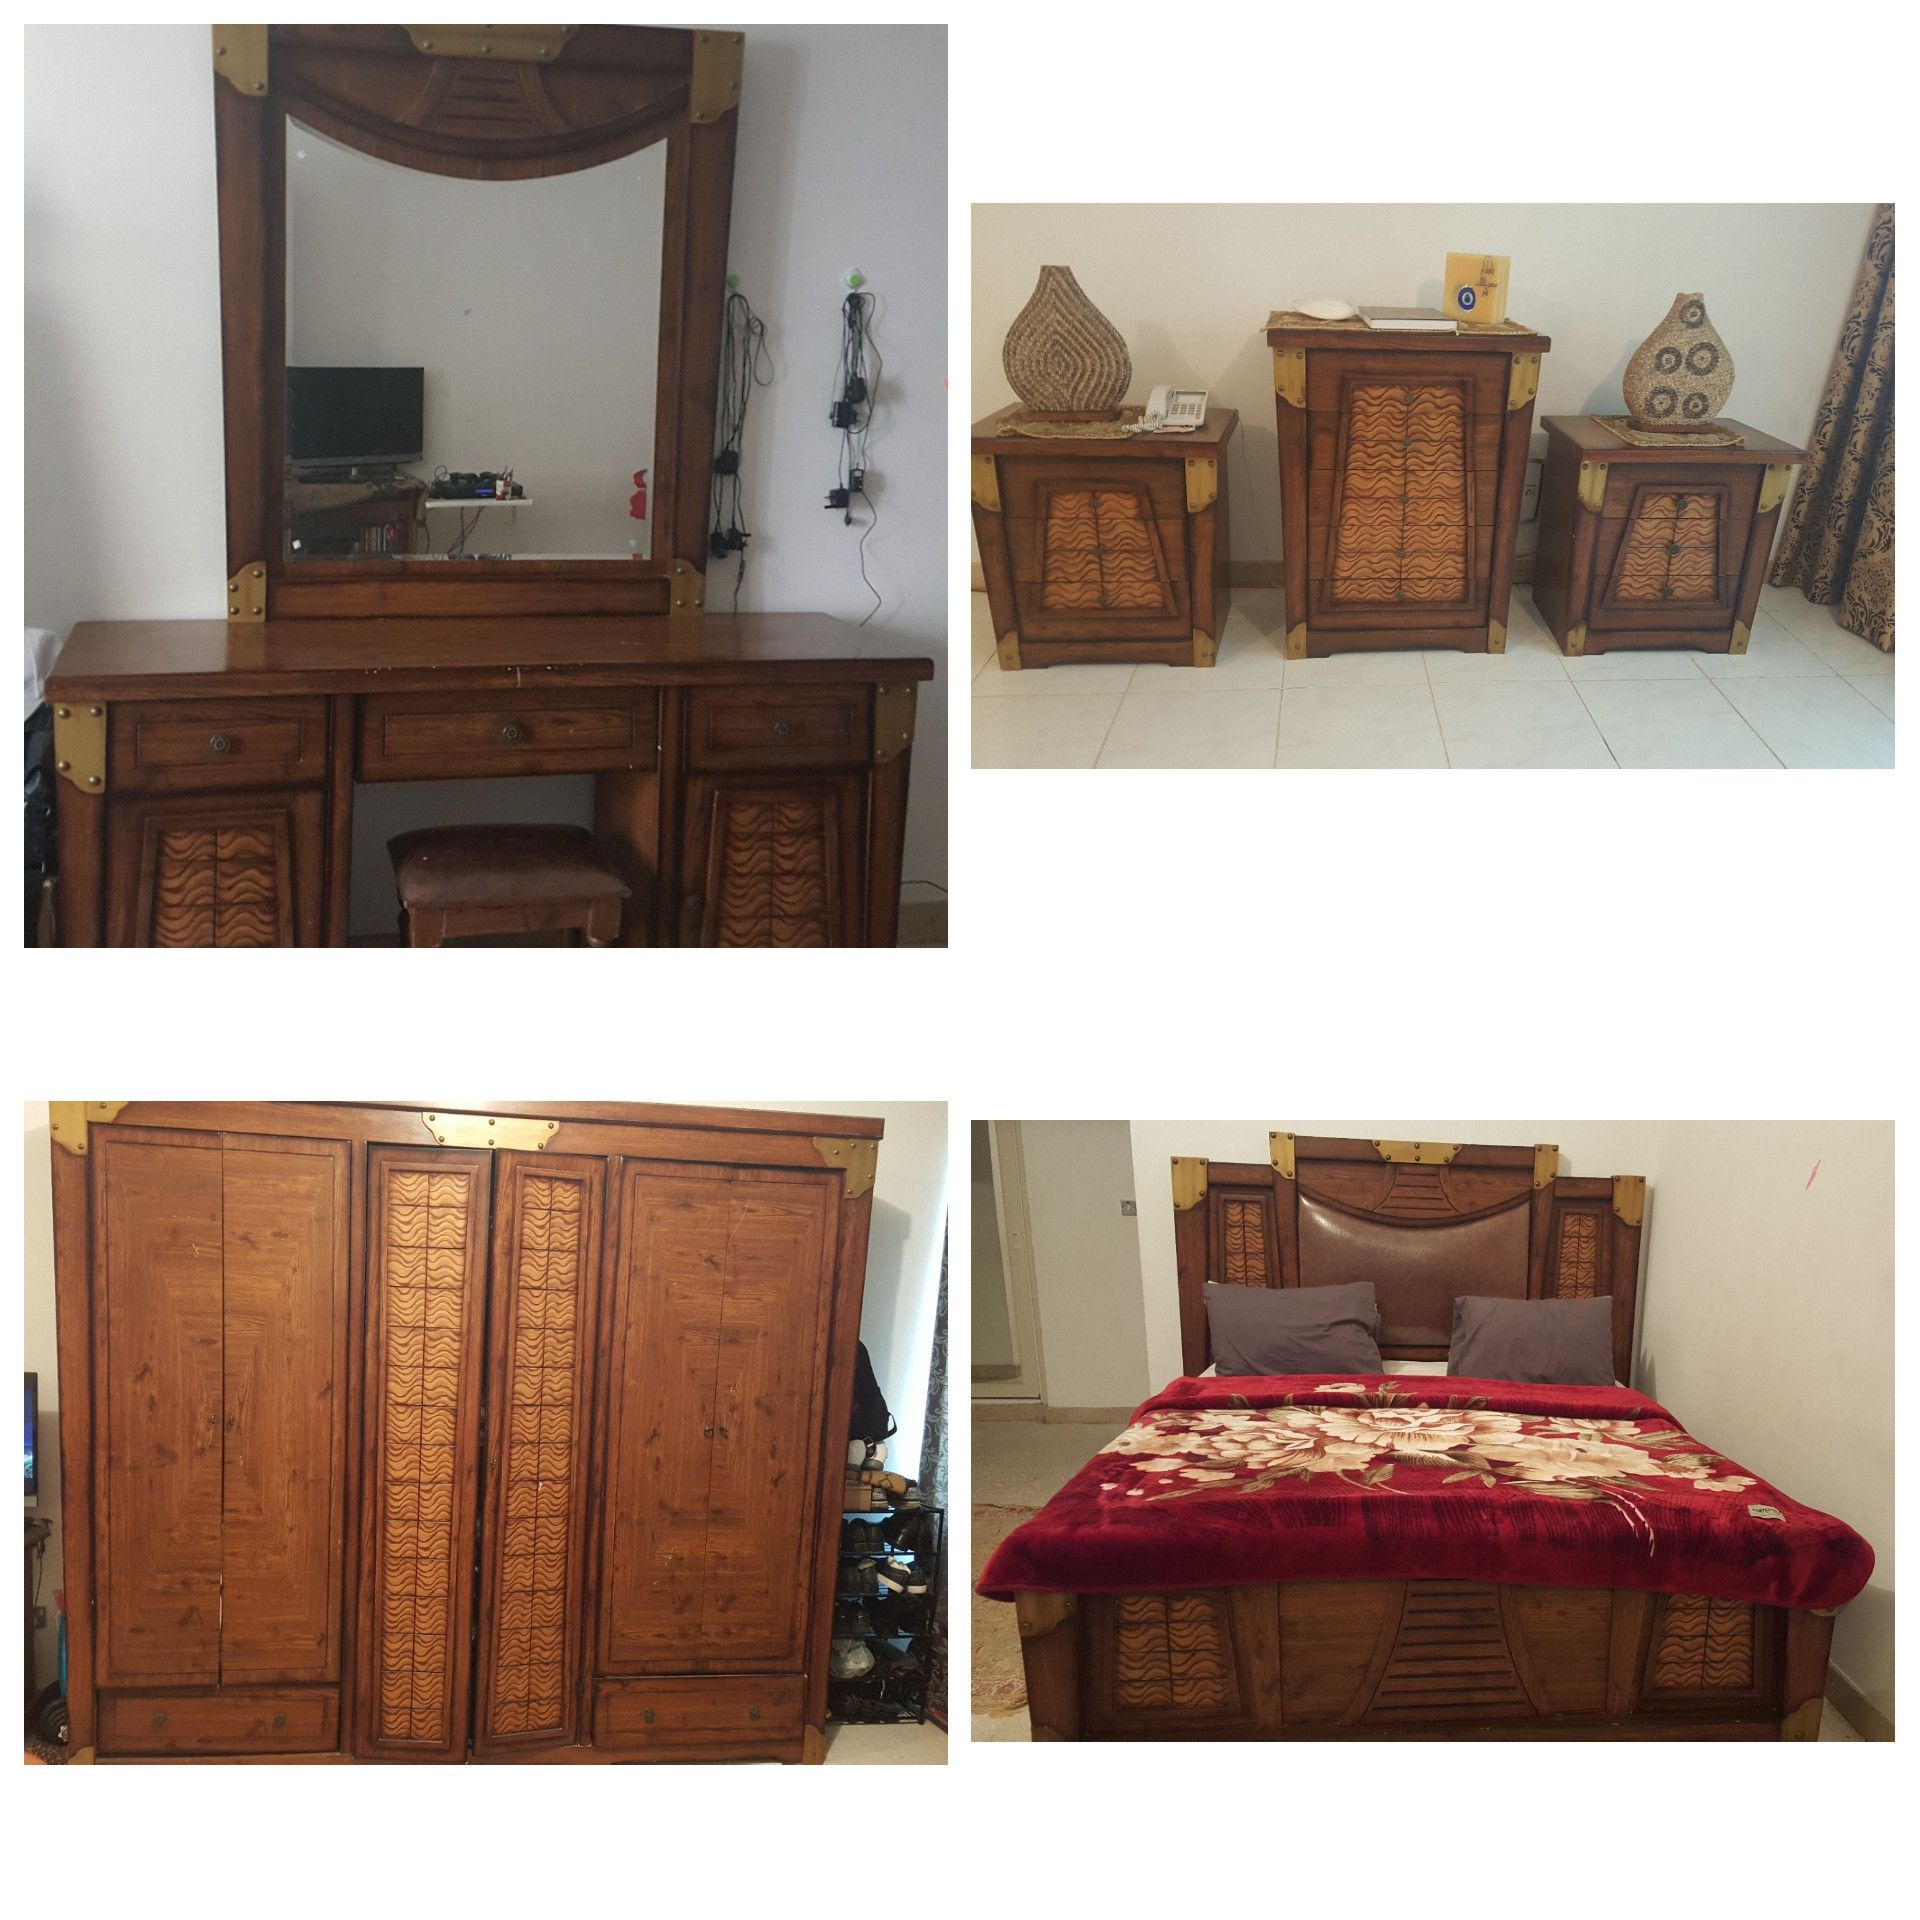 Home furniture for sale in abu dhabi average condition abu dhabi uae storat Home furniture online uae